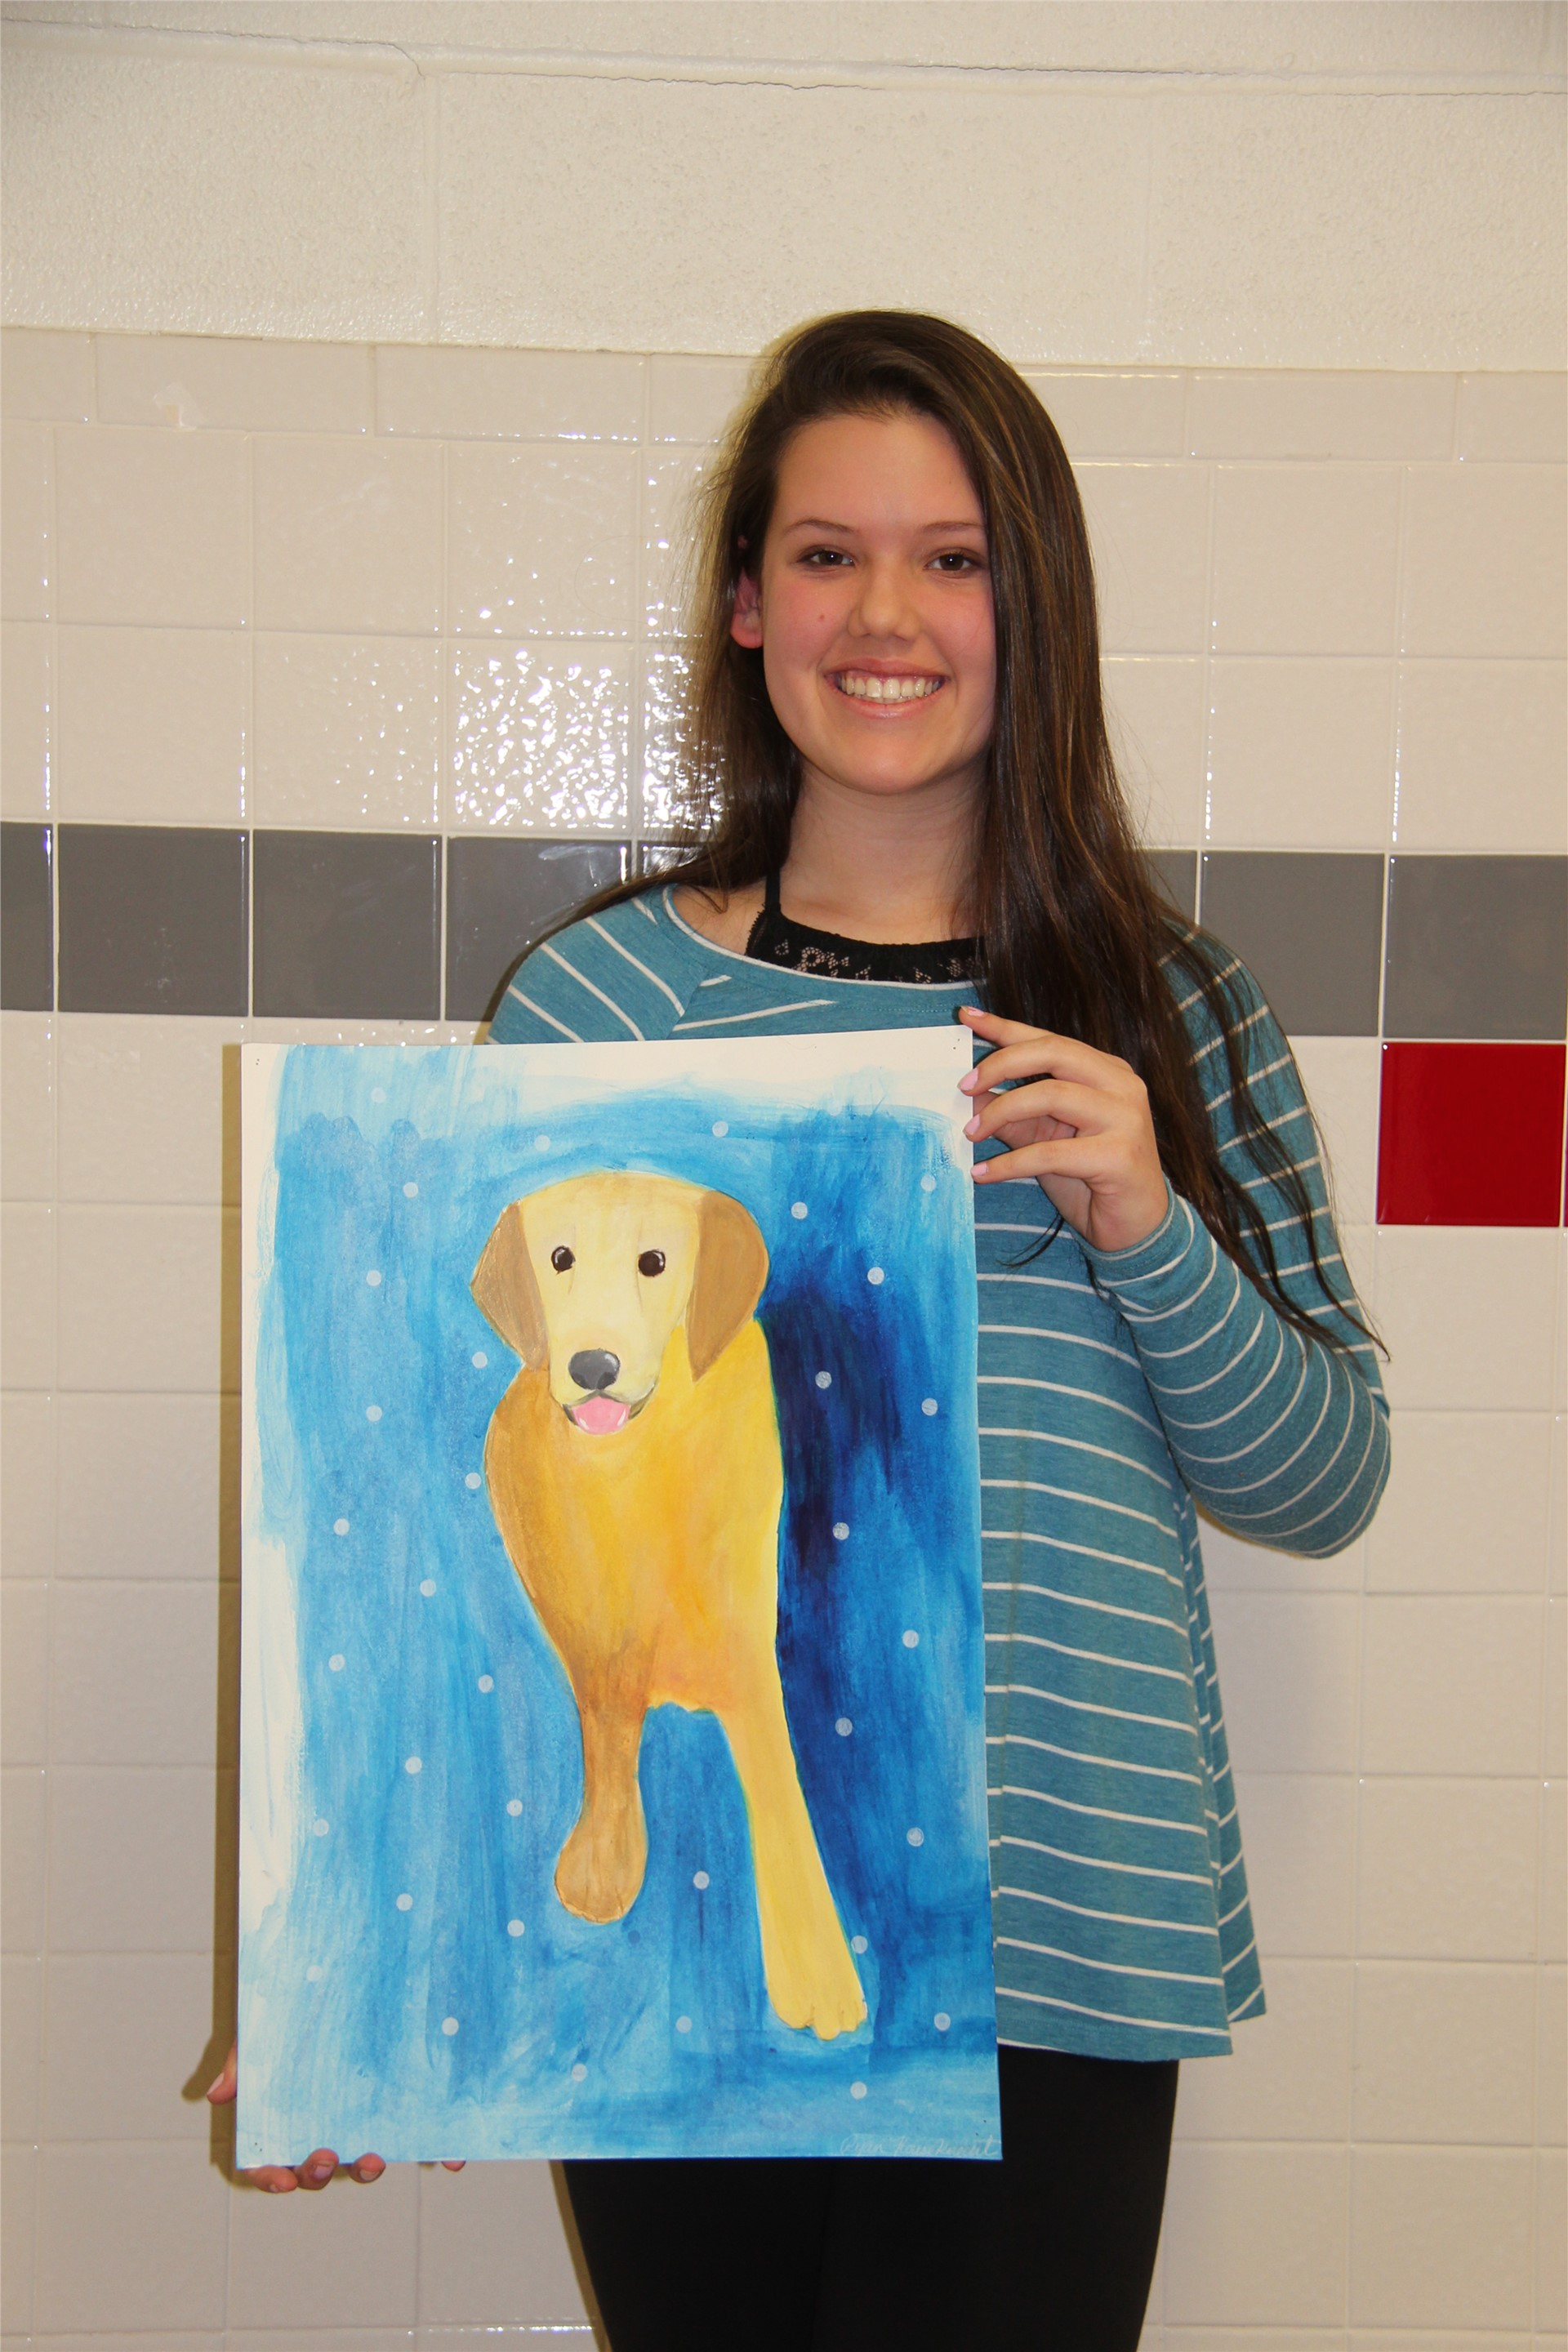 another student holding painting of dog